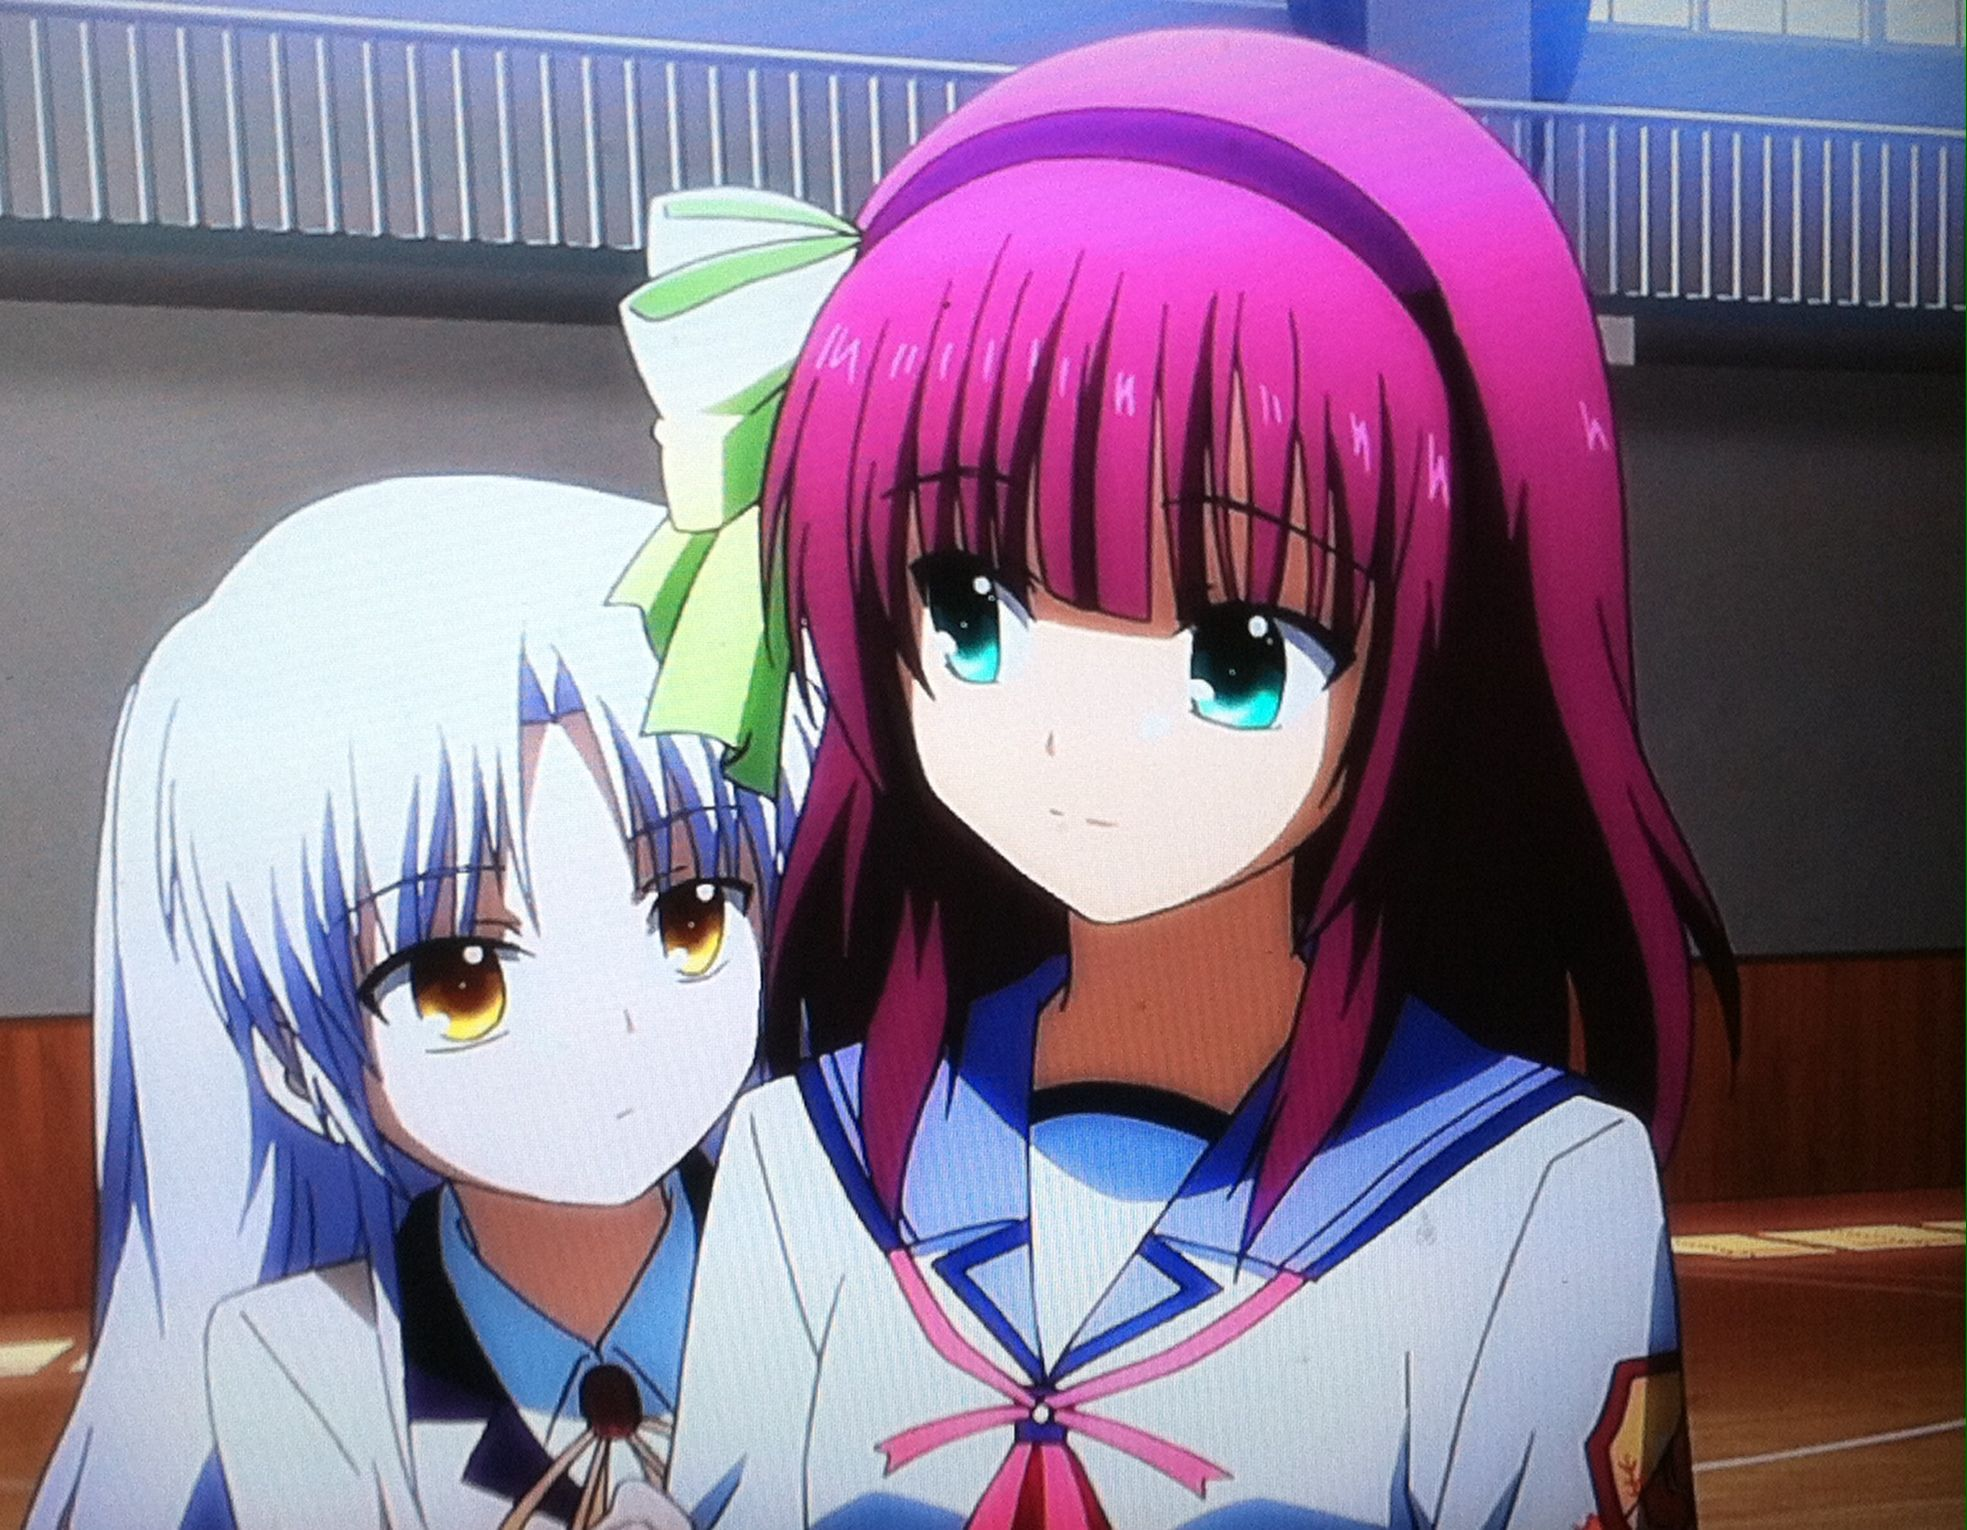 Yuri | Kanade | angel beats | anime | screen shot